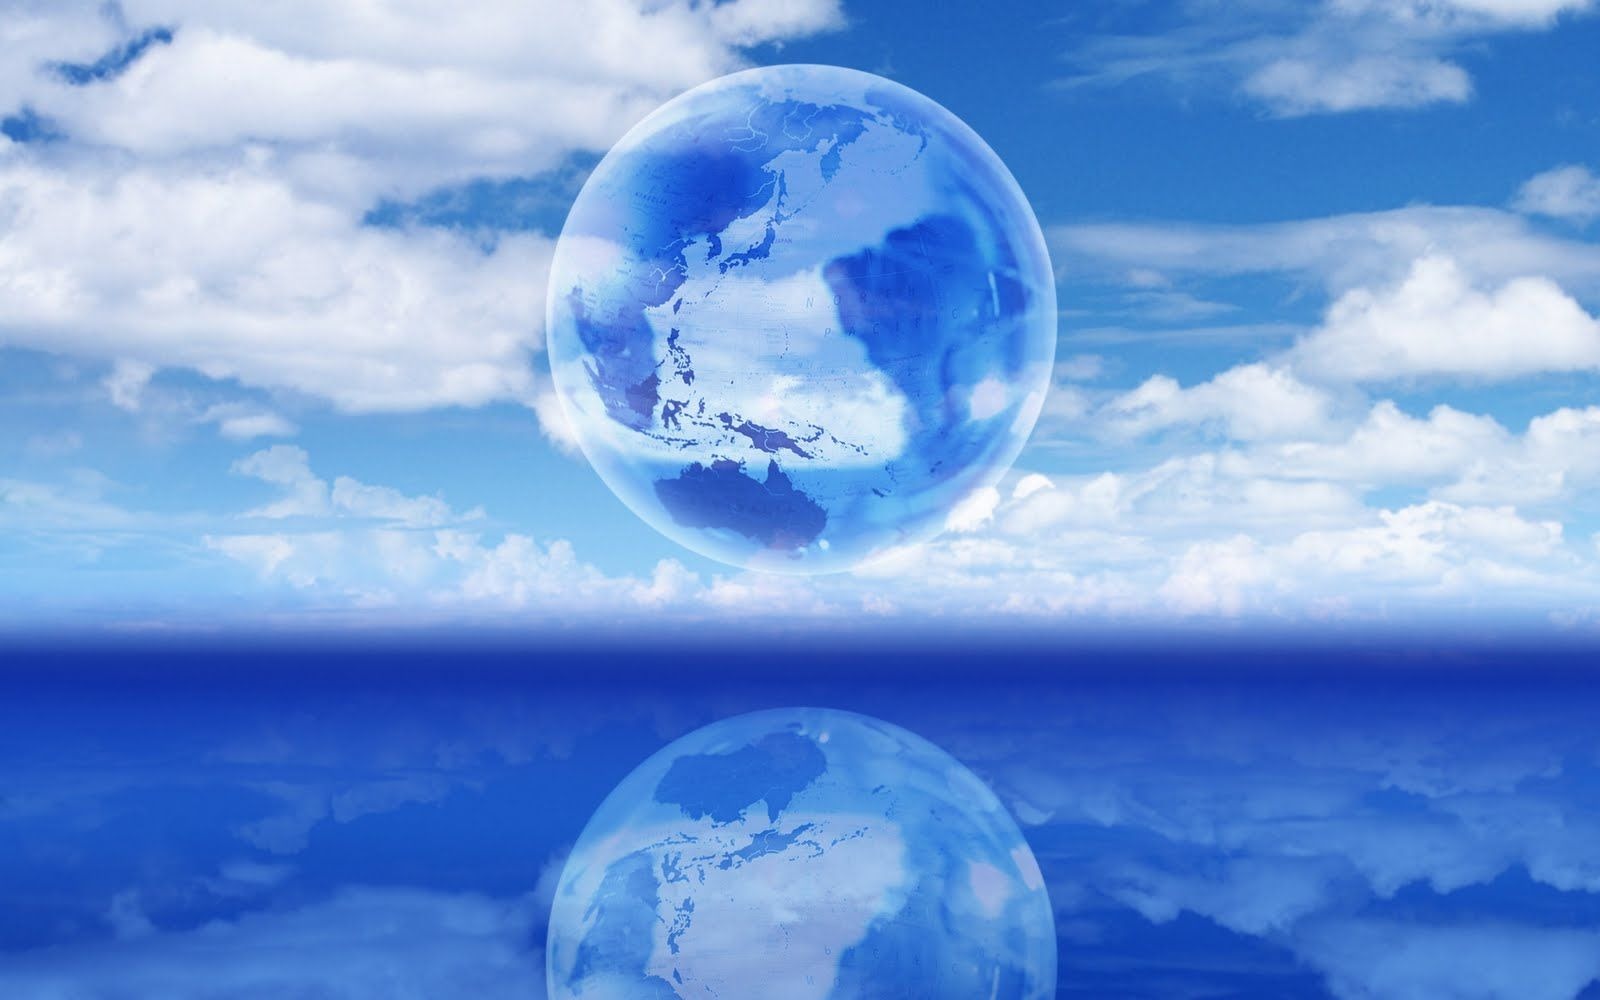 Globe On Clouds Blue Sky Backgrounds Wallpapers 1600x1000 Pixels